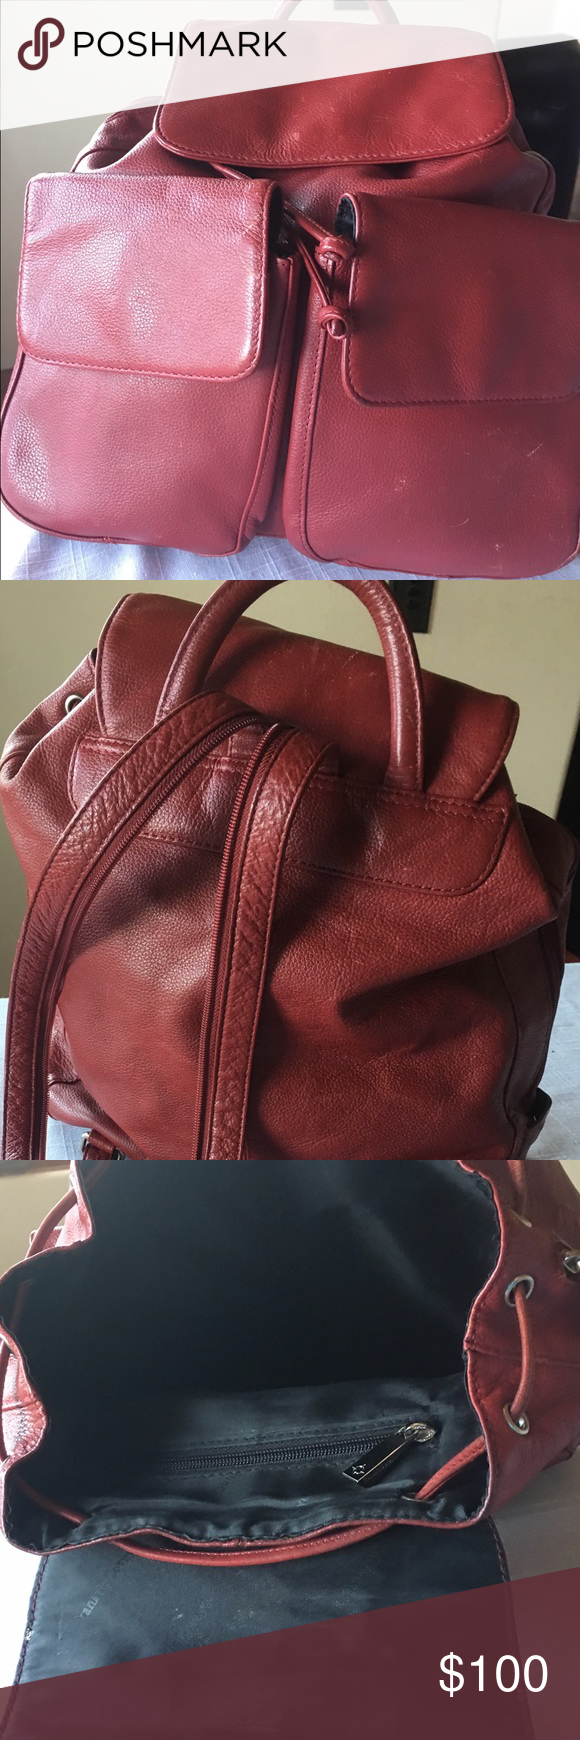 Franklin Covey Red Leather Backpack Bag Red/ Burgandy Leather Backpack bag. Very roomy, magnetic closure, side zipper. Some mine scuffs on outside pocket that can be refurbished. ( see pics) Franklin Covey Bags Backpacks